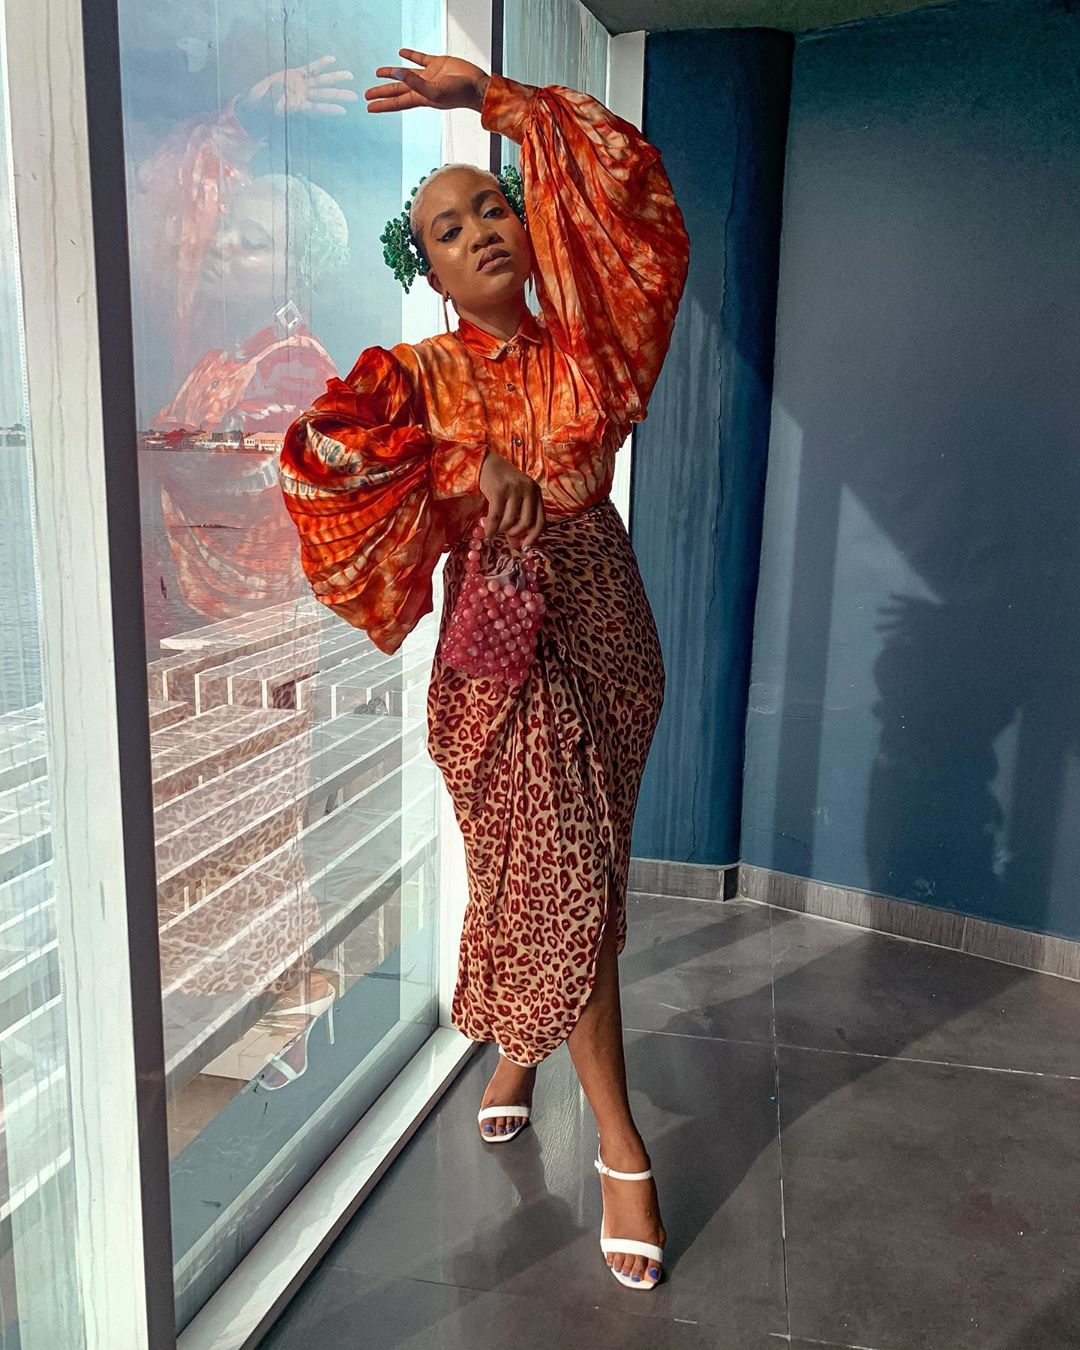 print-mania-how-beyonce-rihanna-kim-k-and-other-stars-propelled-a-craze-for-animal-print